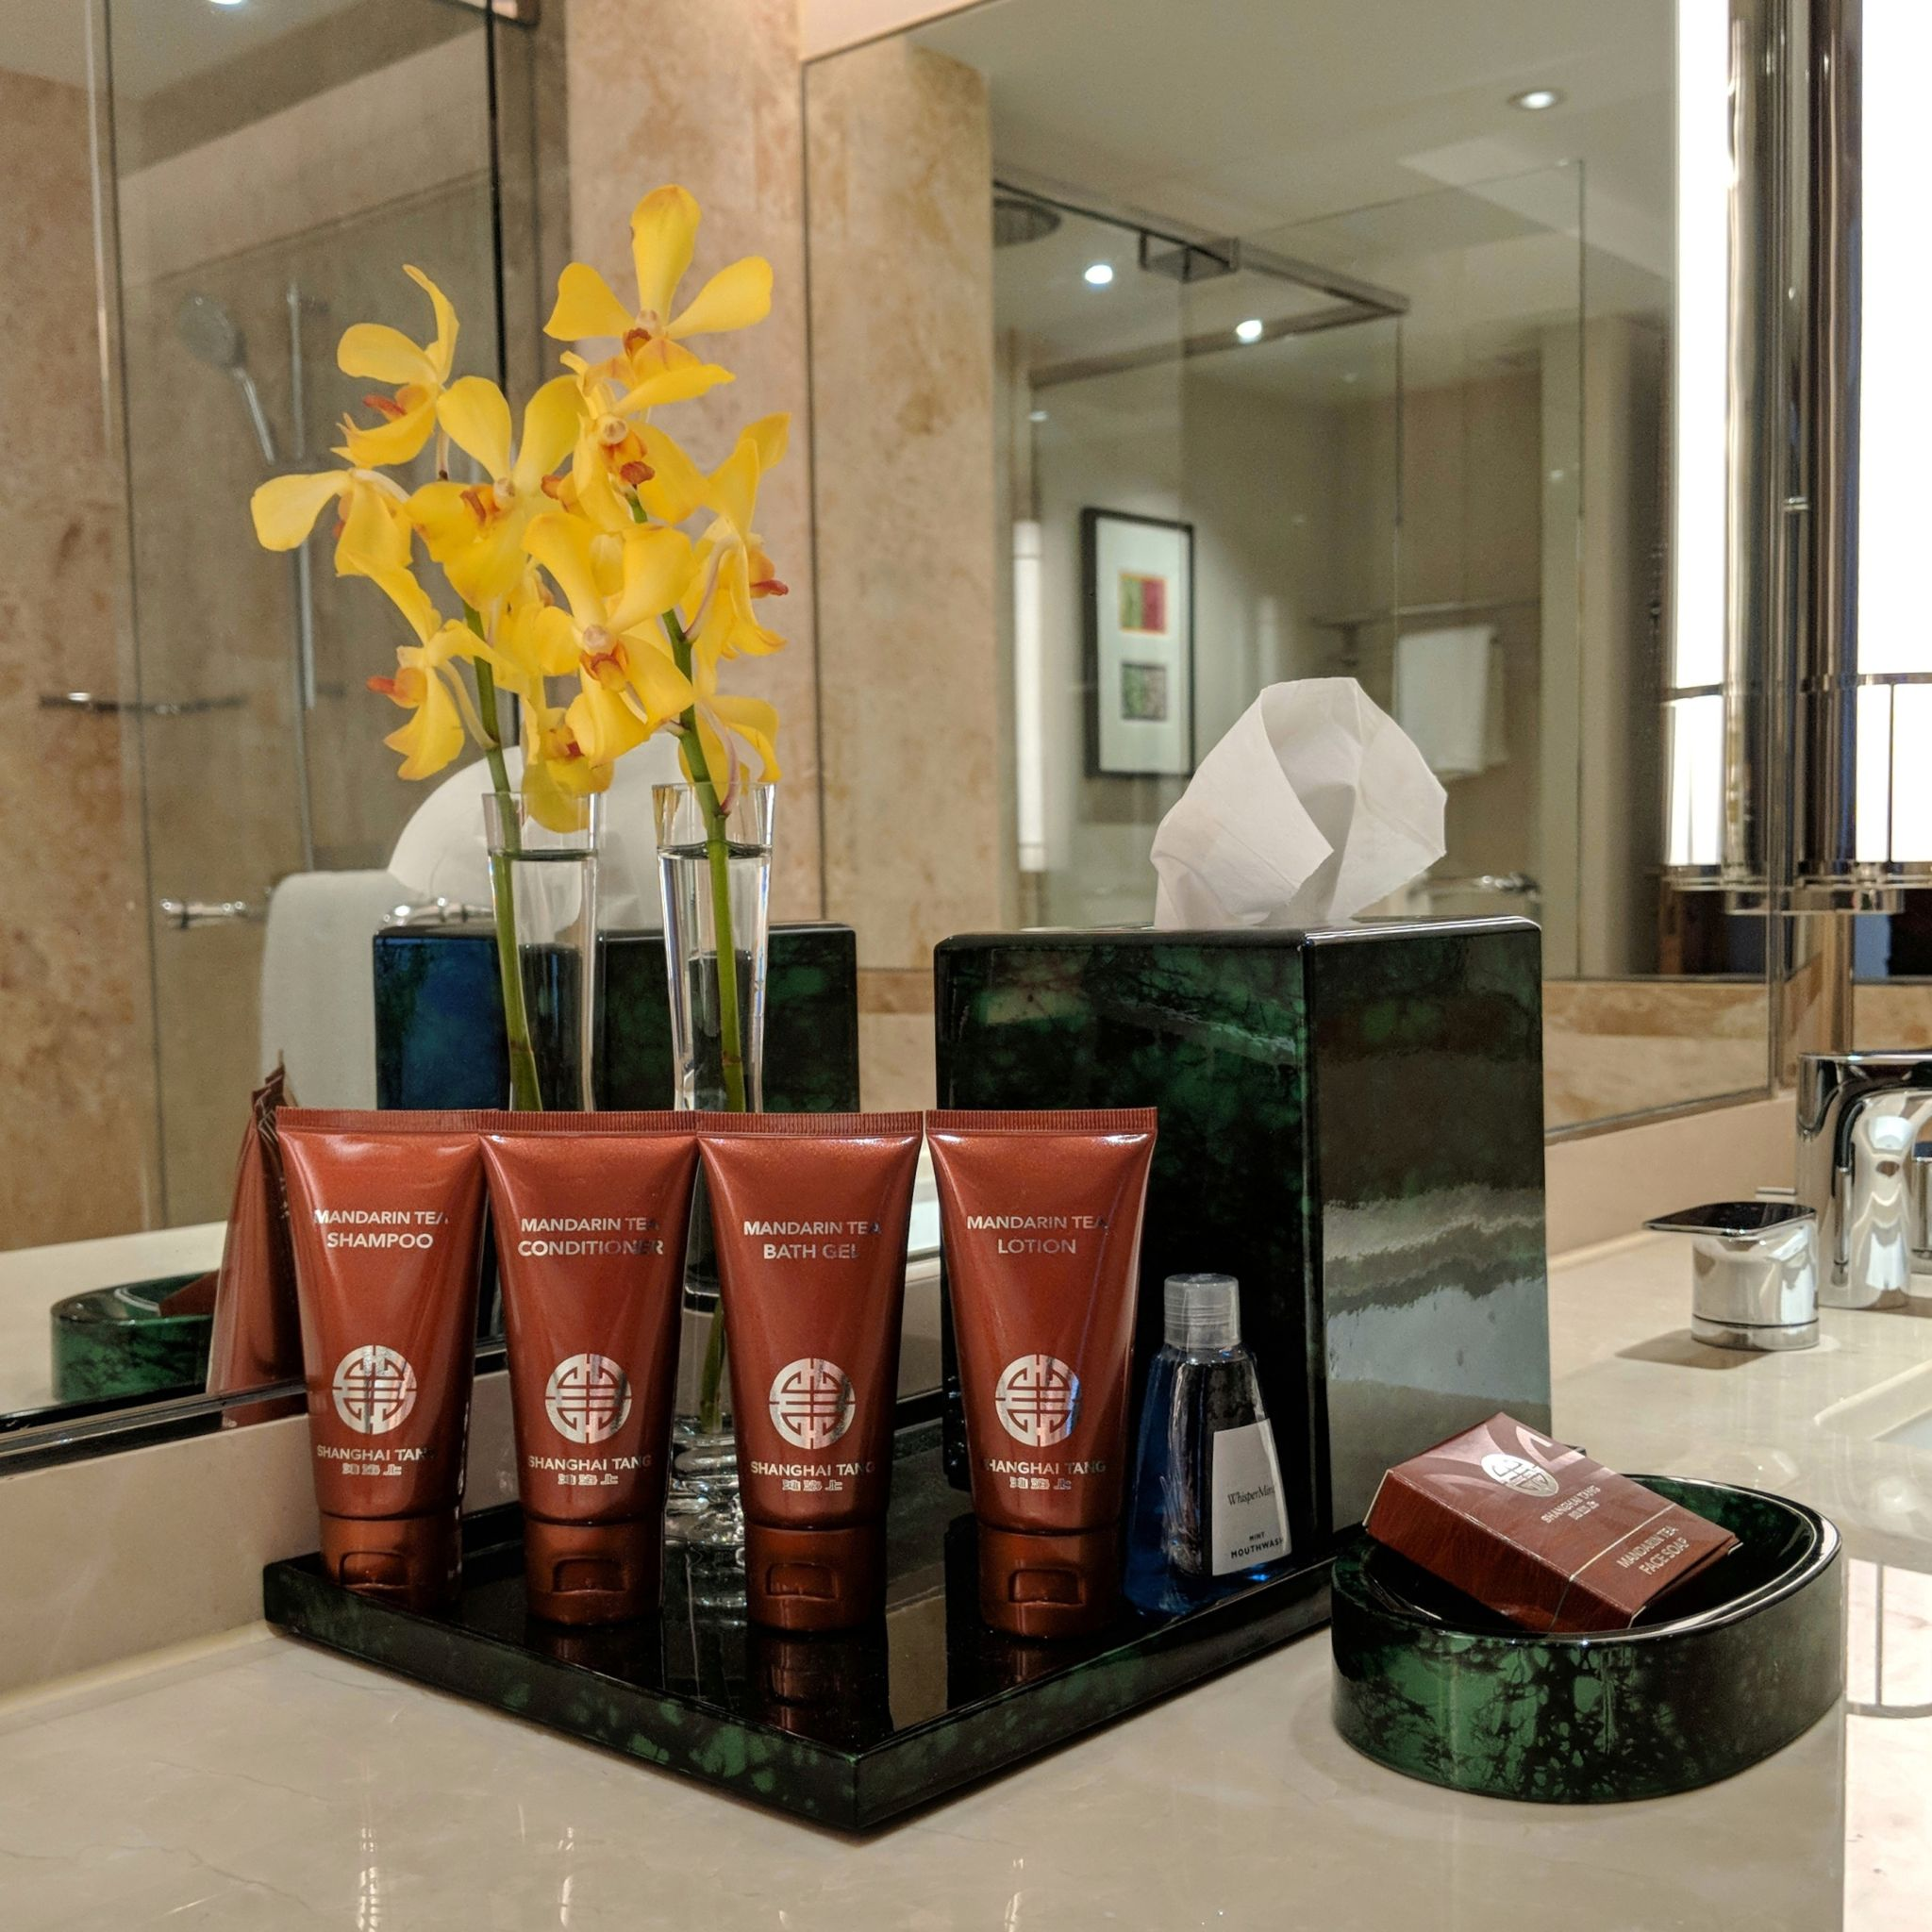 conrad centennial singapore shanghai tang bathroom amenities